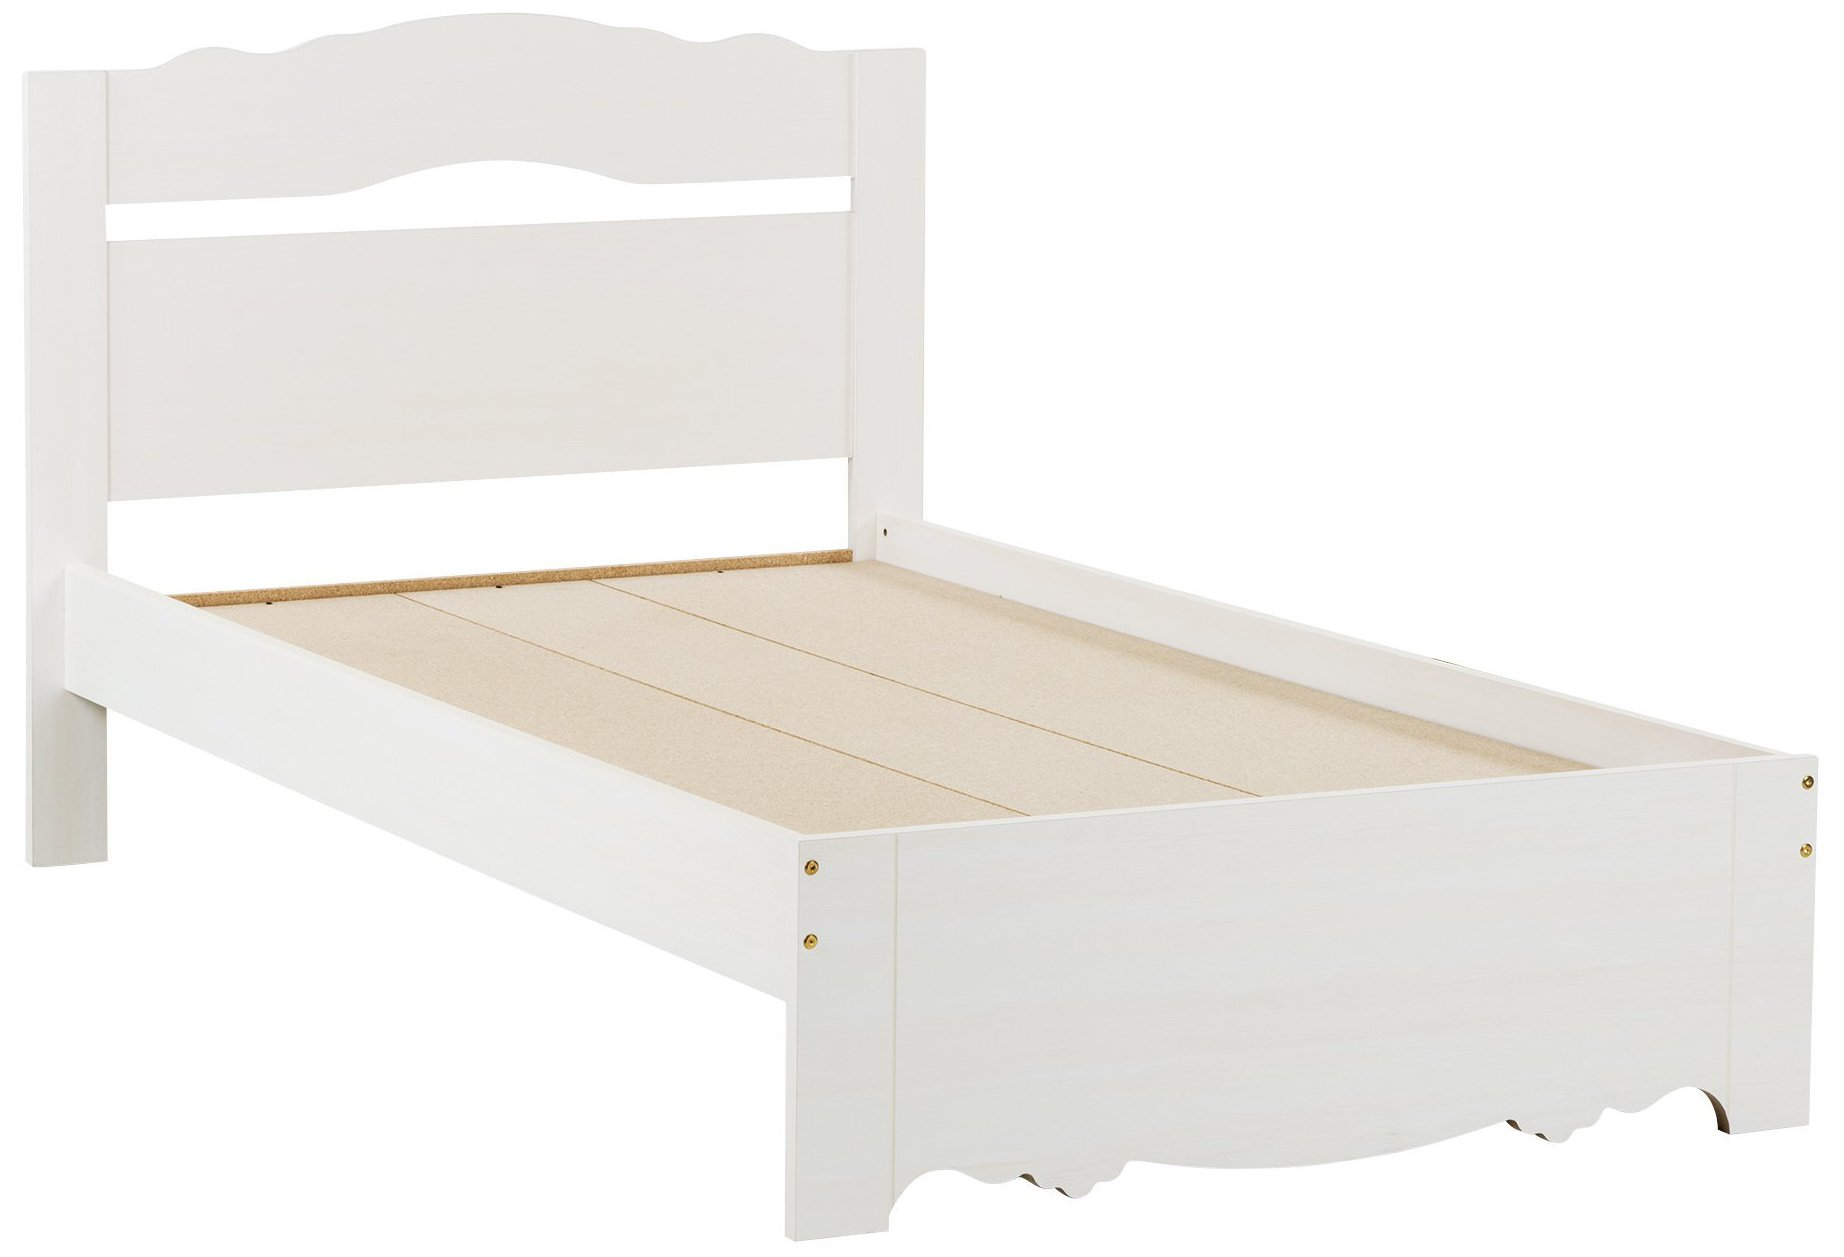 South Shore Lily Rose Bed & Headboard Set, Twin 3-inch, White Wash by South Shore